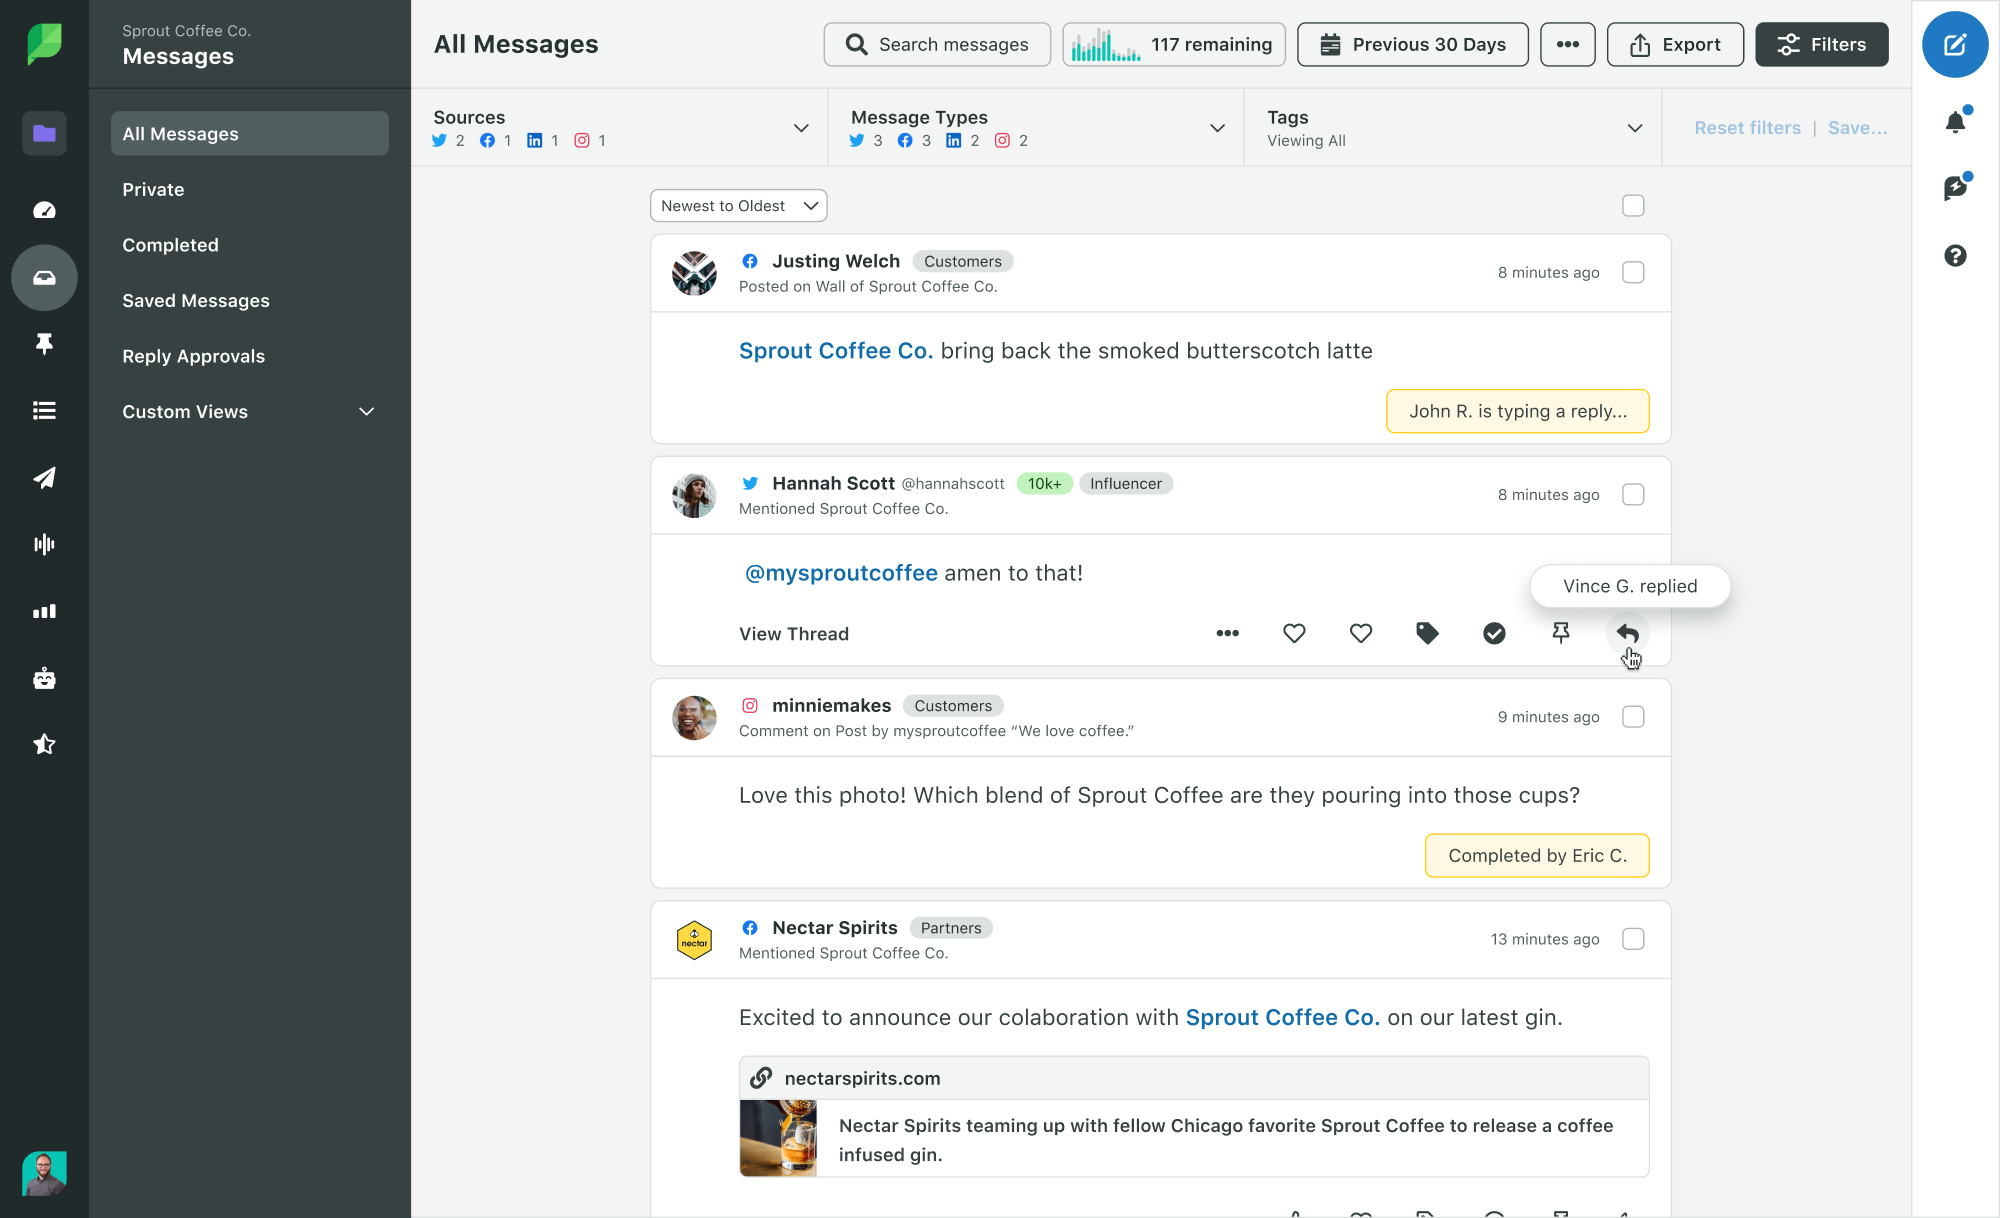 Sprout Social Smart Inbox collision detections